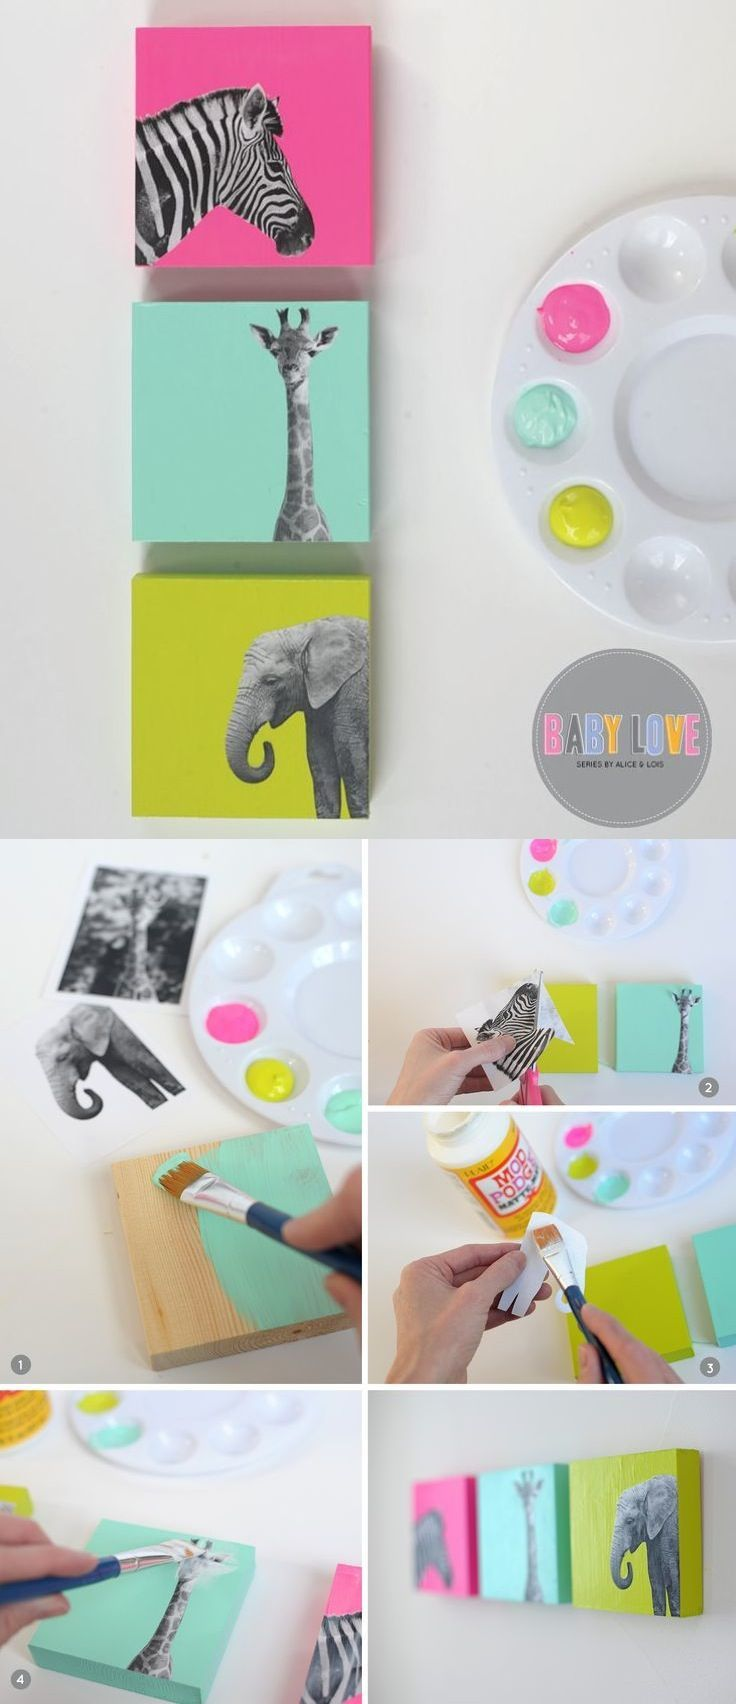 Best 20 Diy projects for kids ideas on Pinterest Summer diy